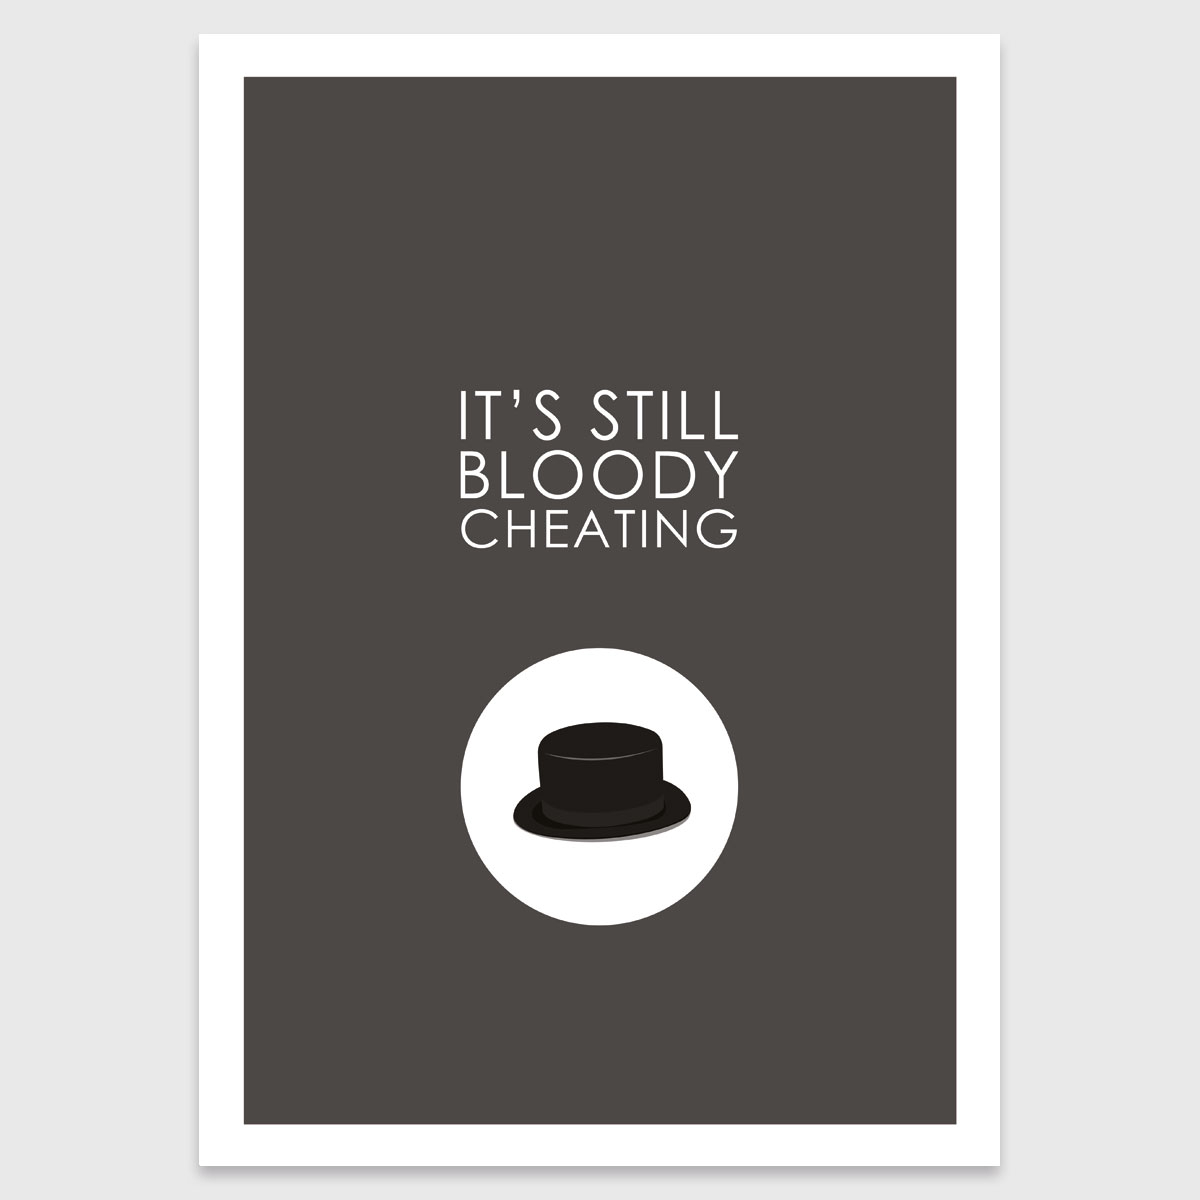 Retro print: It's still bloody cheating